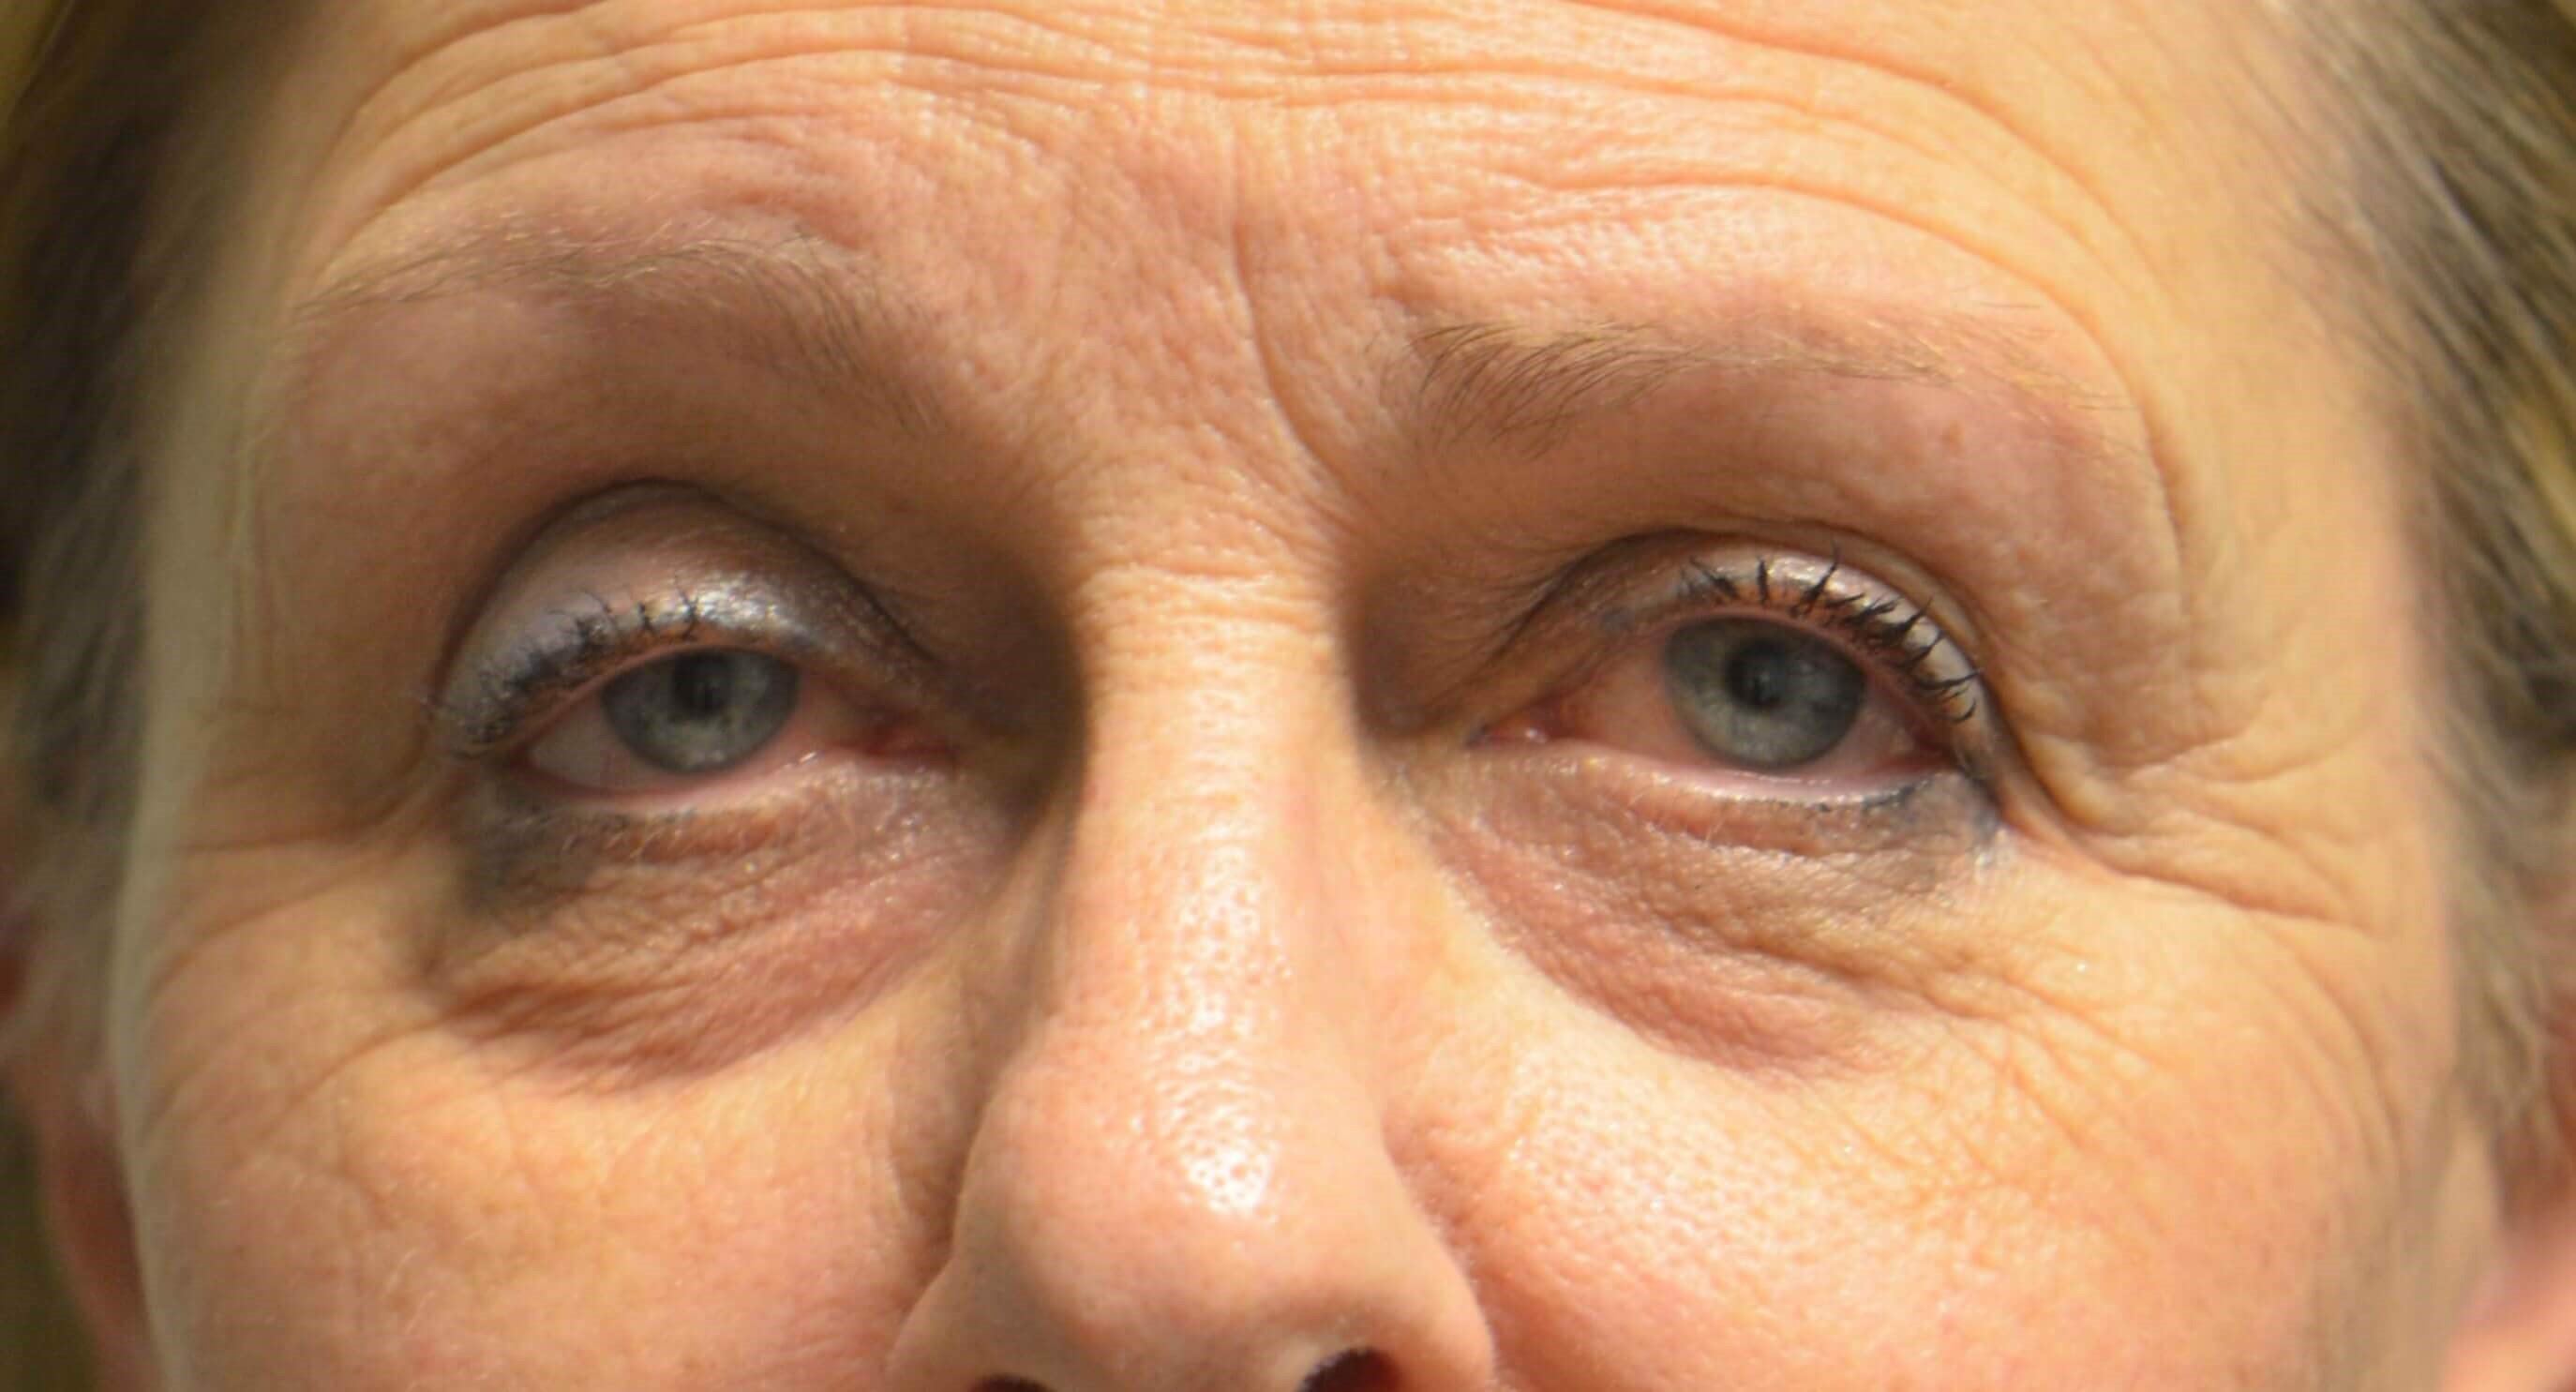 Blepharplasty Ptosis Repair Before